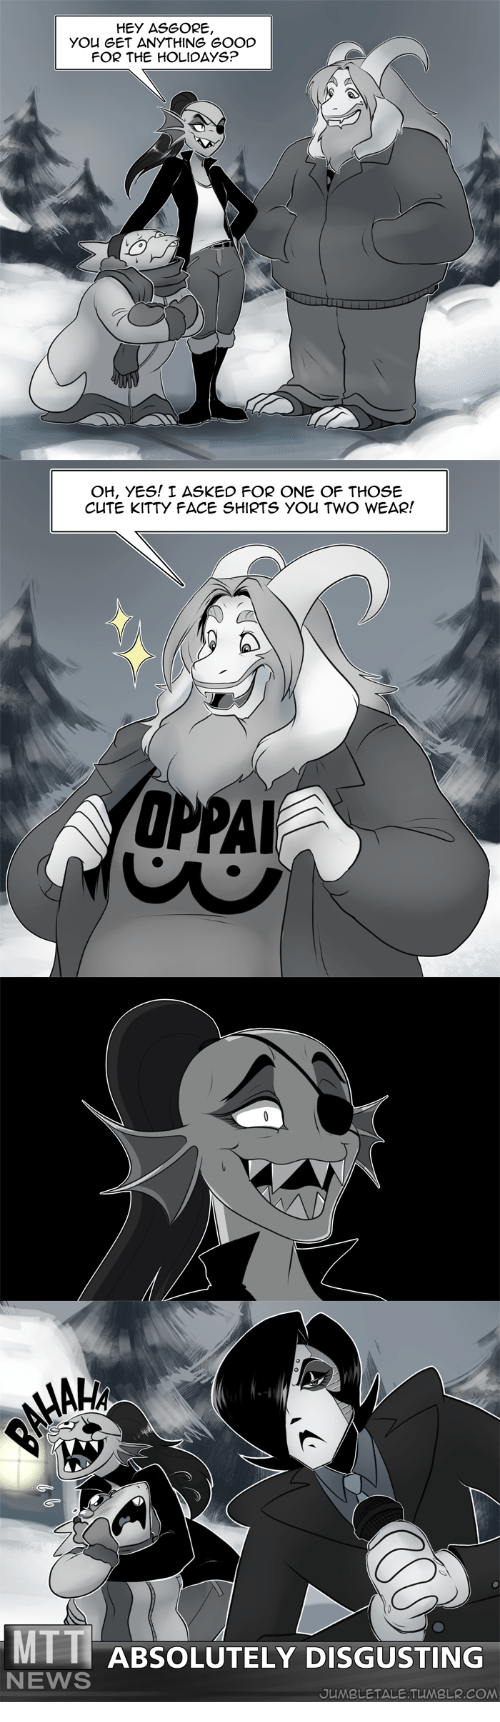 absolutely disgusting: YOu GET ANYTHING GOOD  FOR THE HOLIDAYS?   OH, yES! 1 дSKED FOR ONE OF THOSE  CUTE KITTY FACE SHIRTS YOu TWO WEAR!  YOPPAI   AHA  MTT ABSOLUTELY DISGUSTING  NEWS  DUMBLETALE.TUMBLR.COM